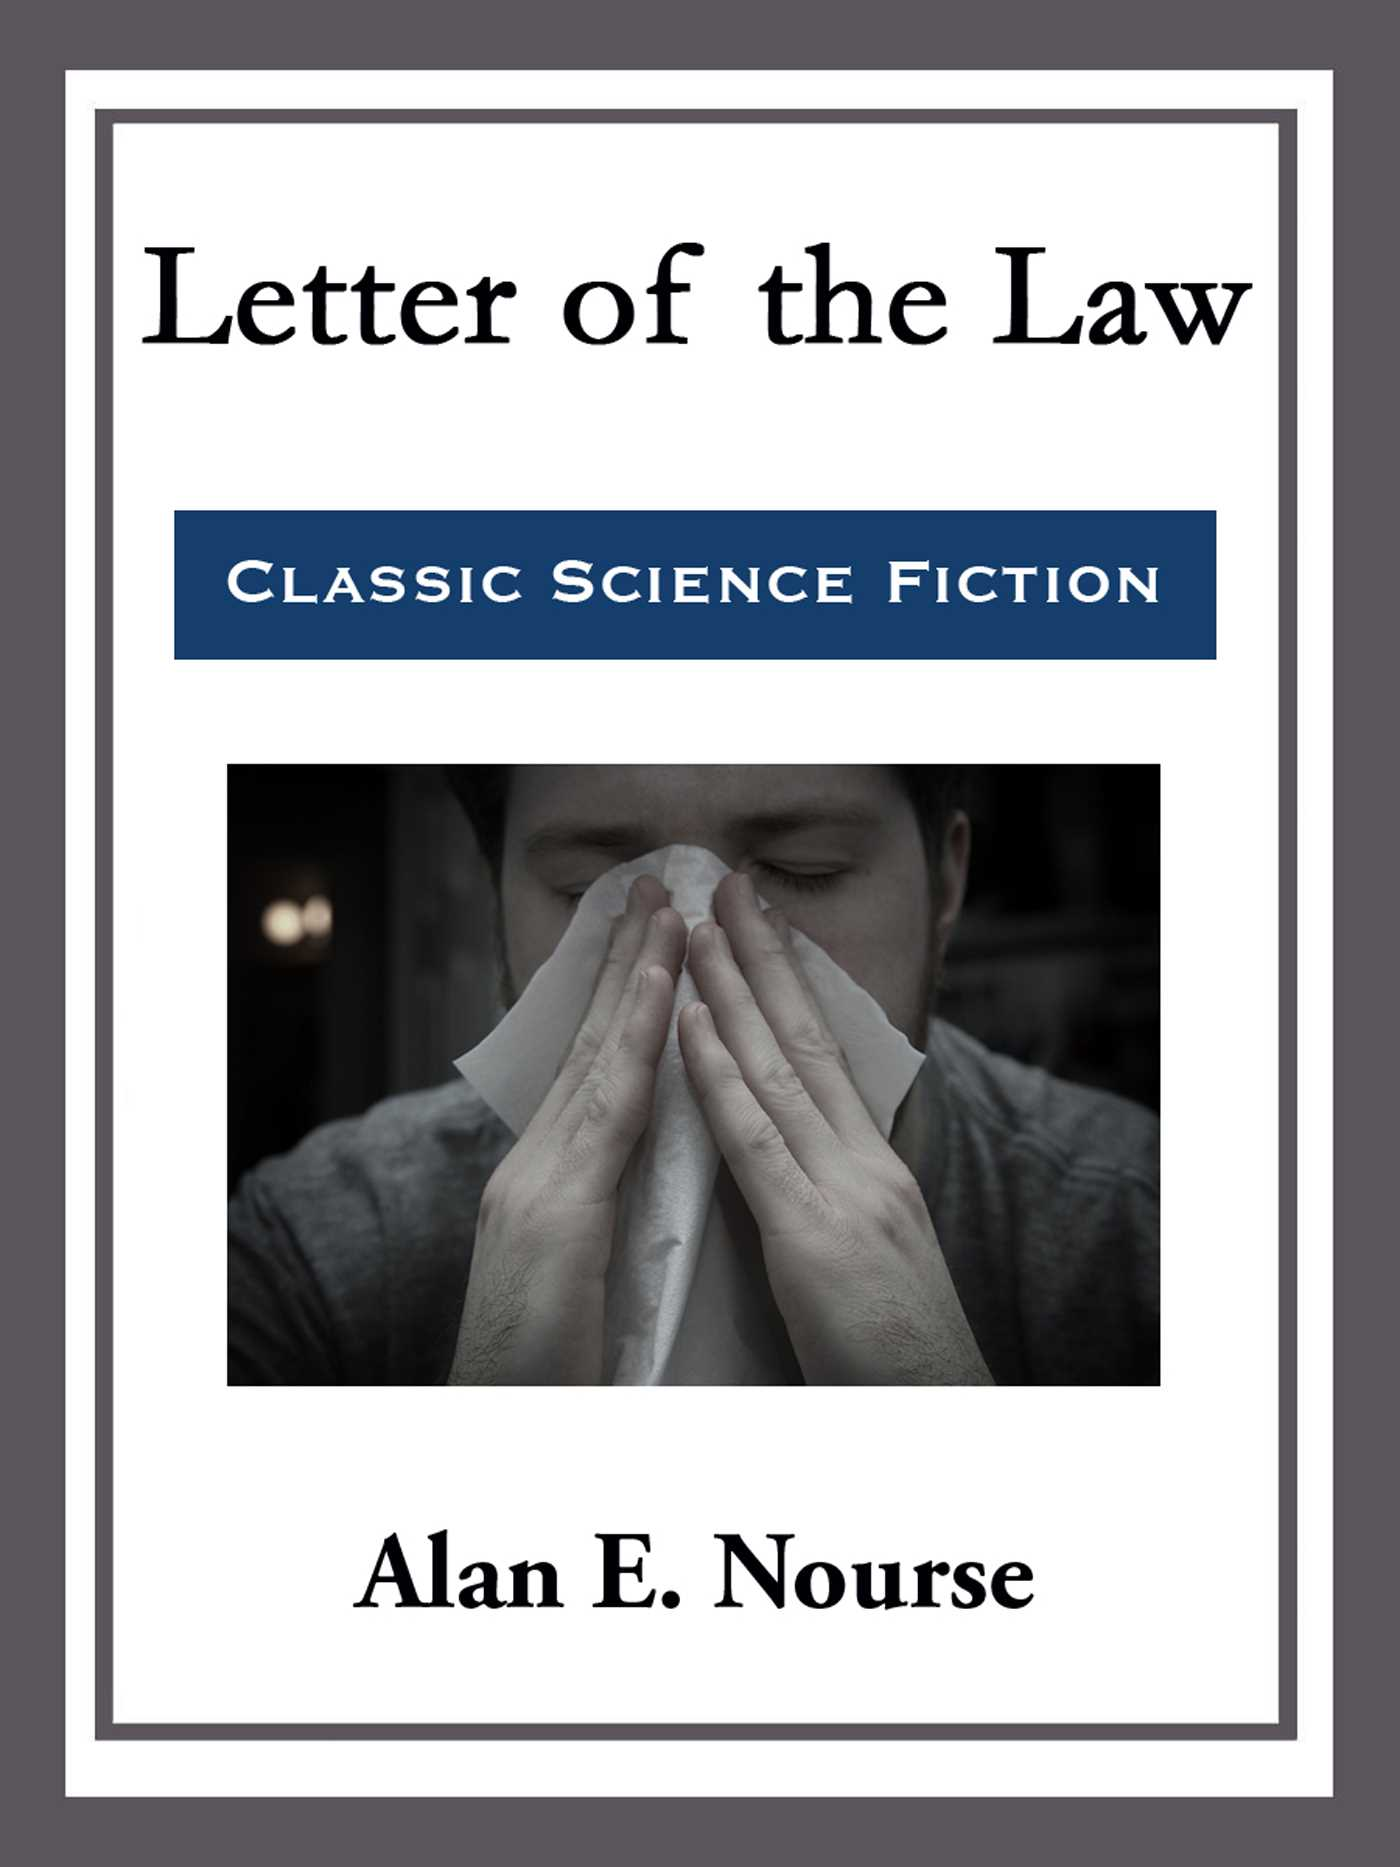 Letter of the law 9781681465265 hr